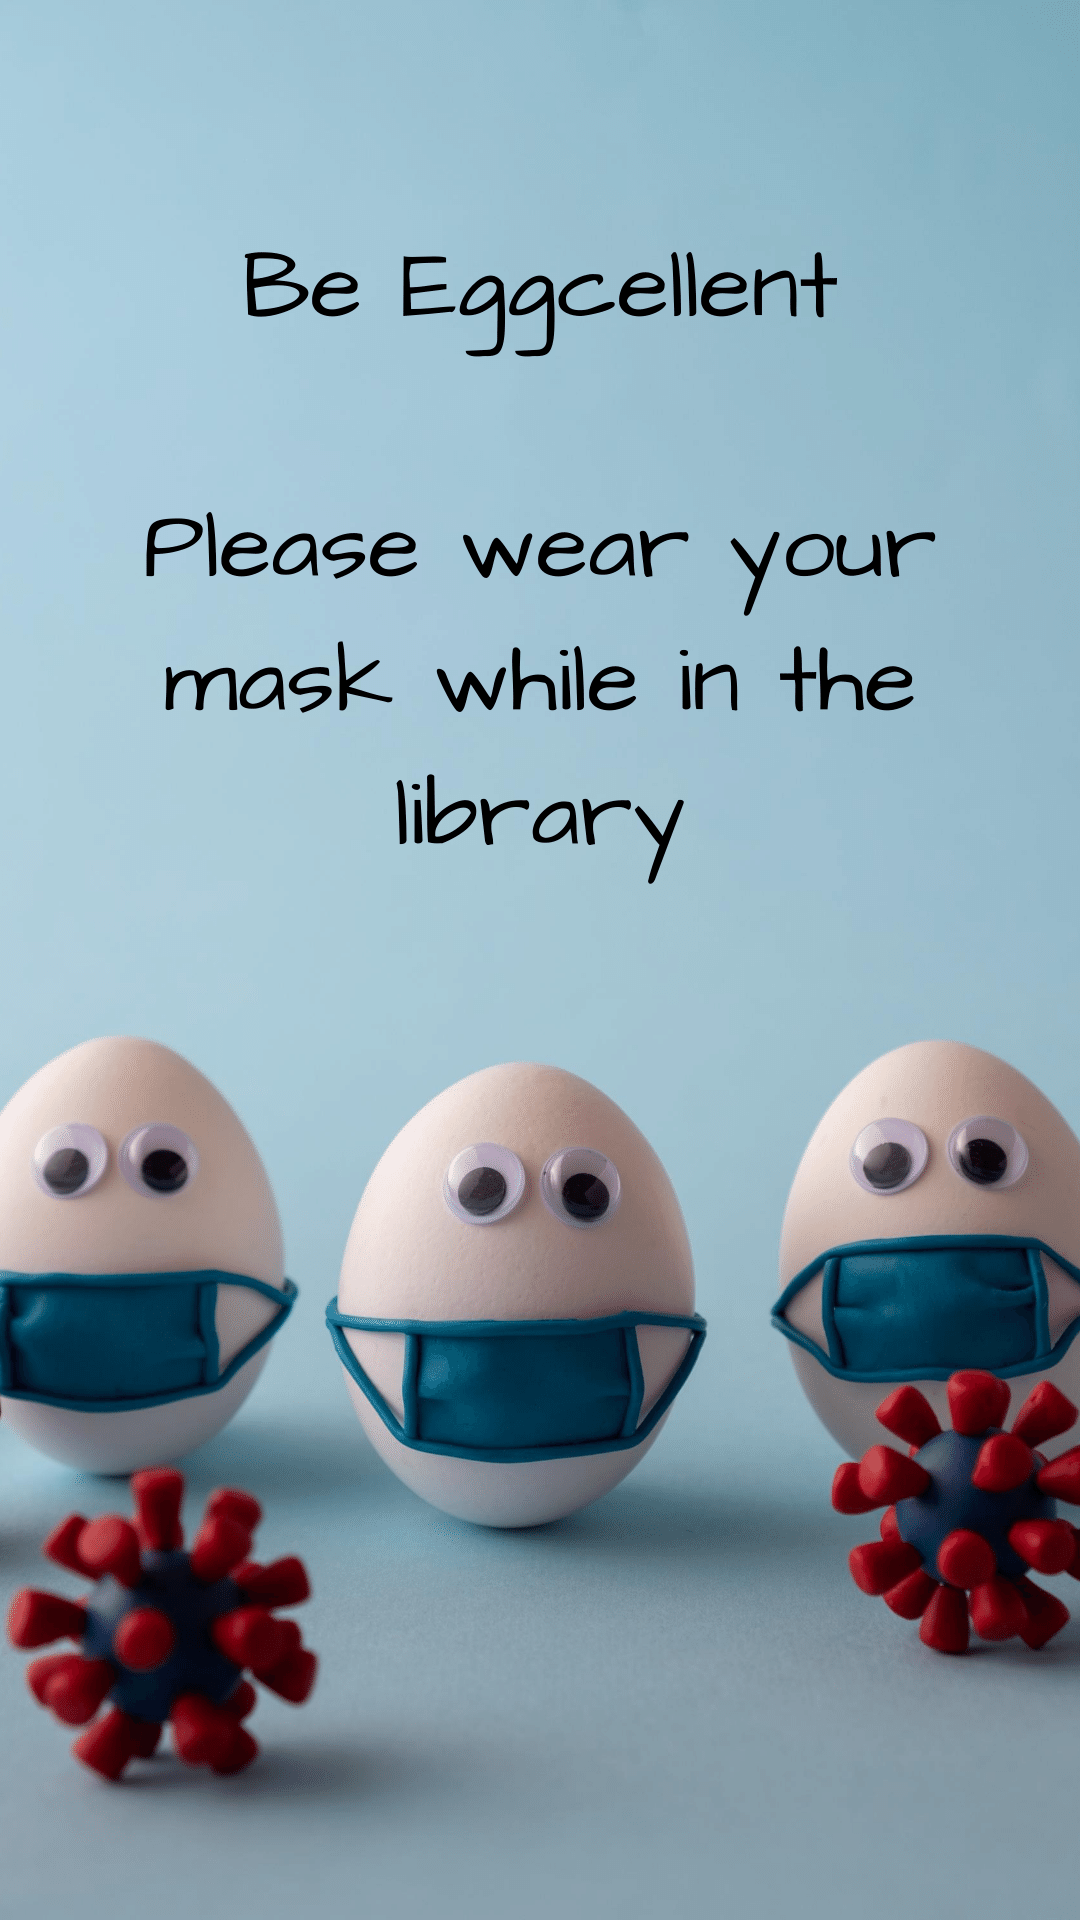 Please wear your mask in the library